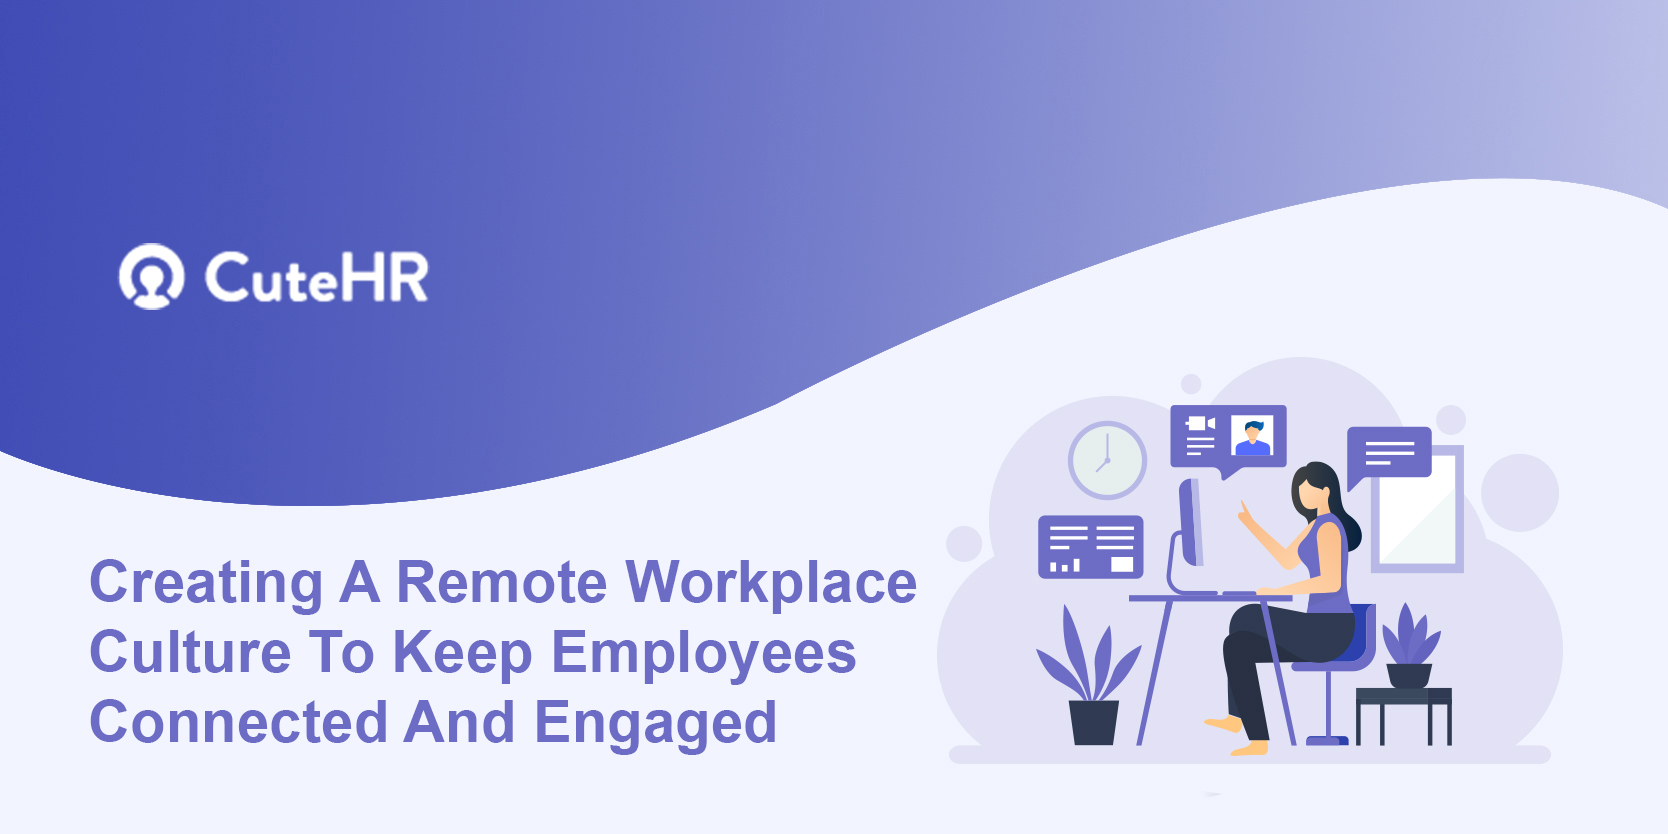 How To Create A Better Remote Workplace Culture To Keep Employees Engaged?